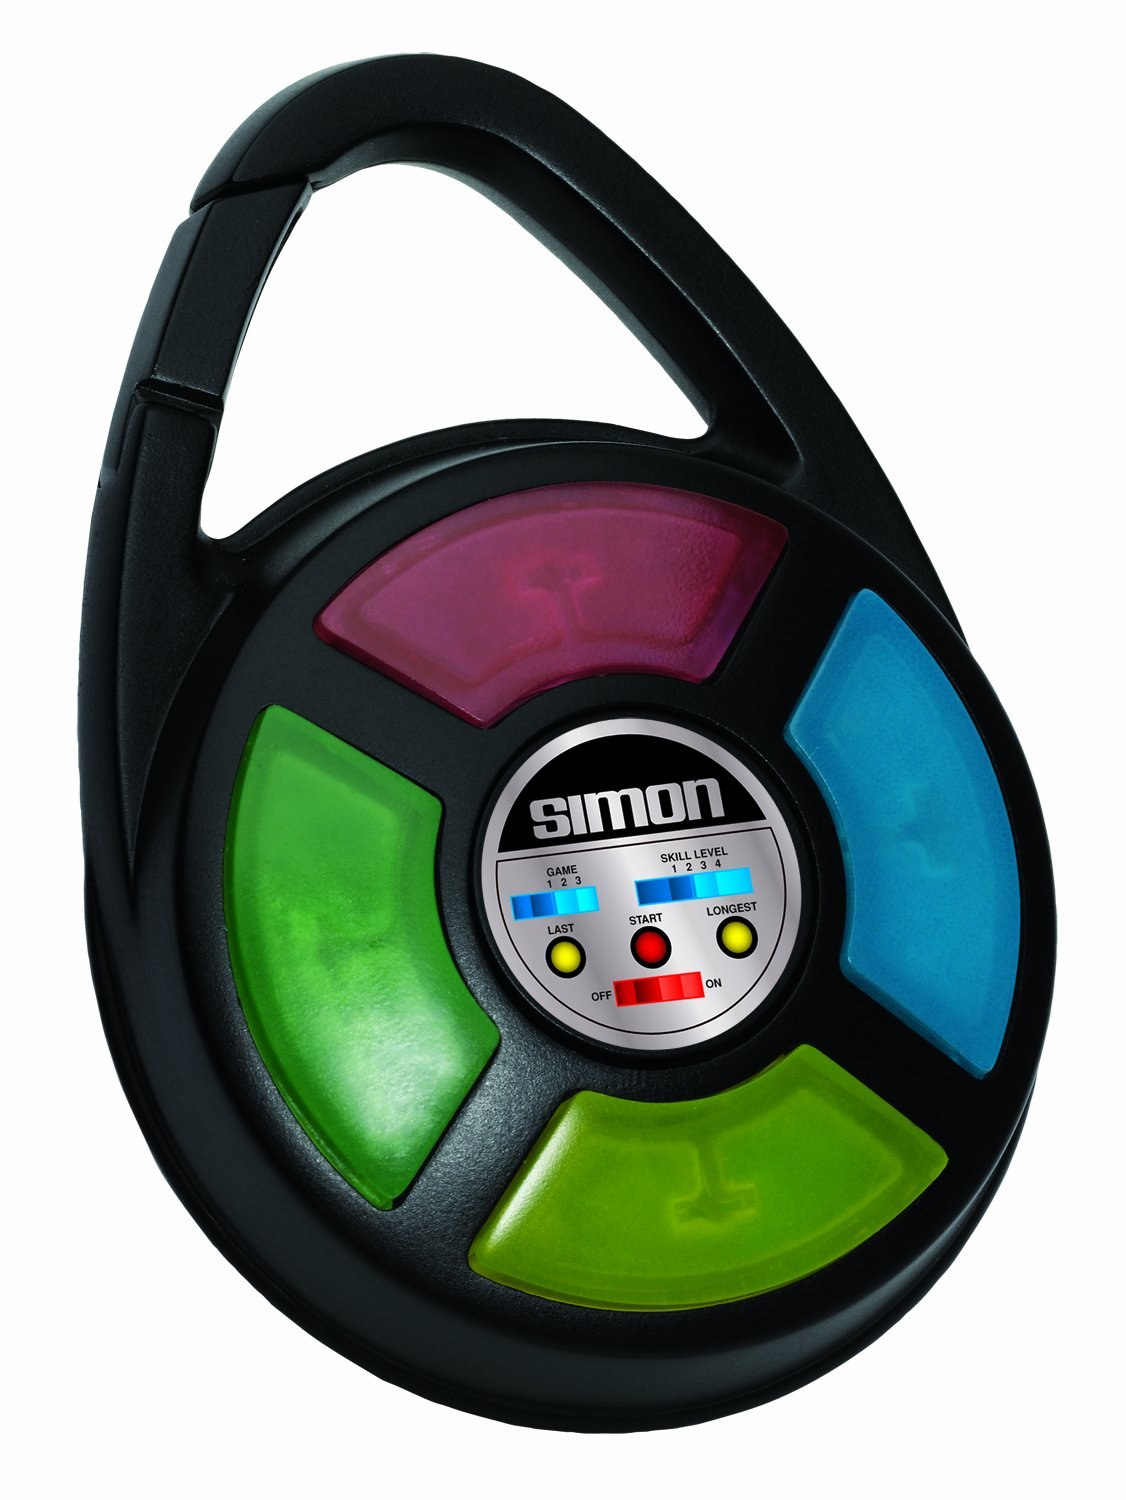 Simon Electronic Carabiner Hand Held Game by Basic Fun